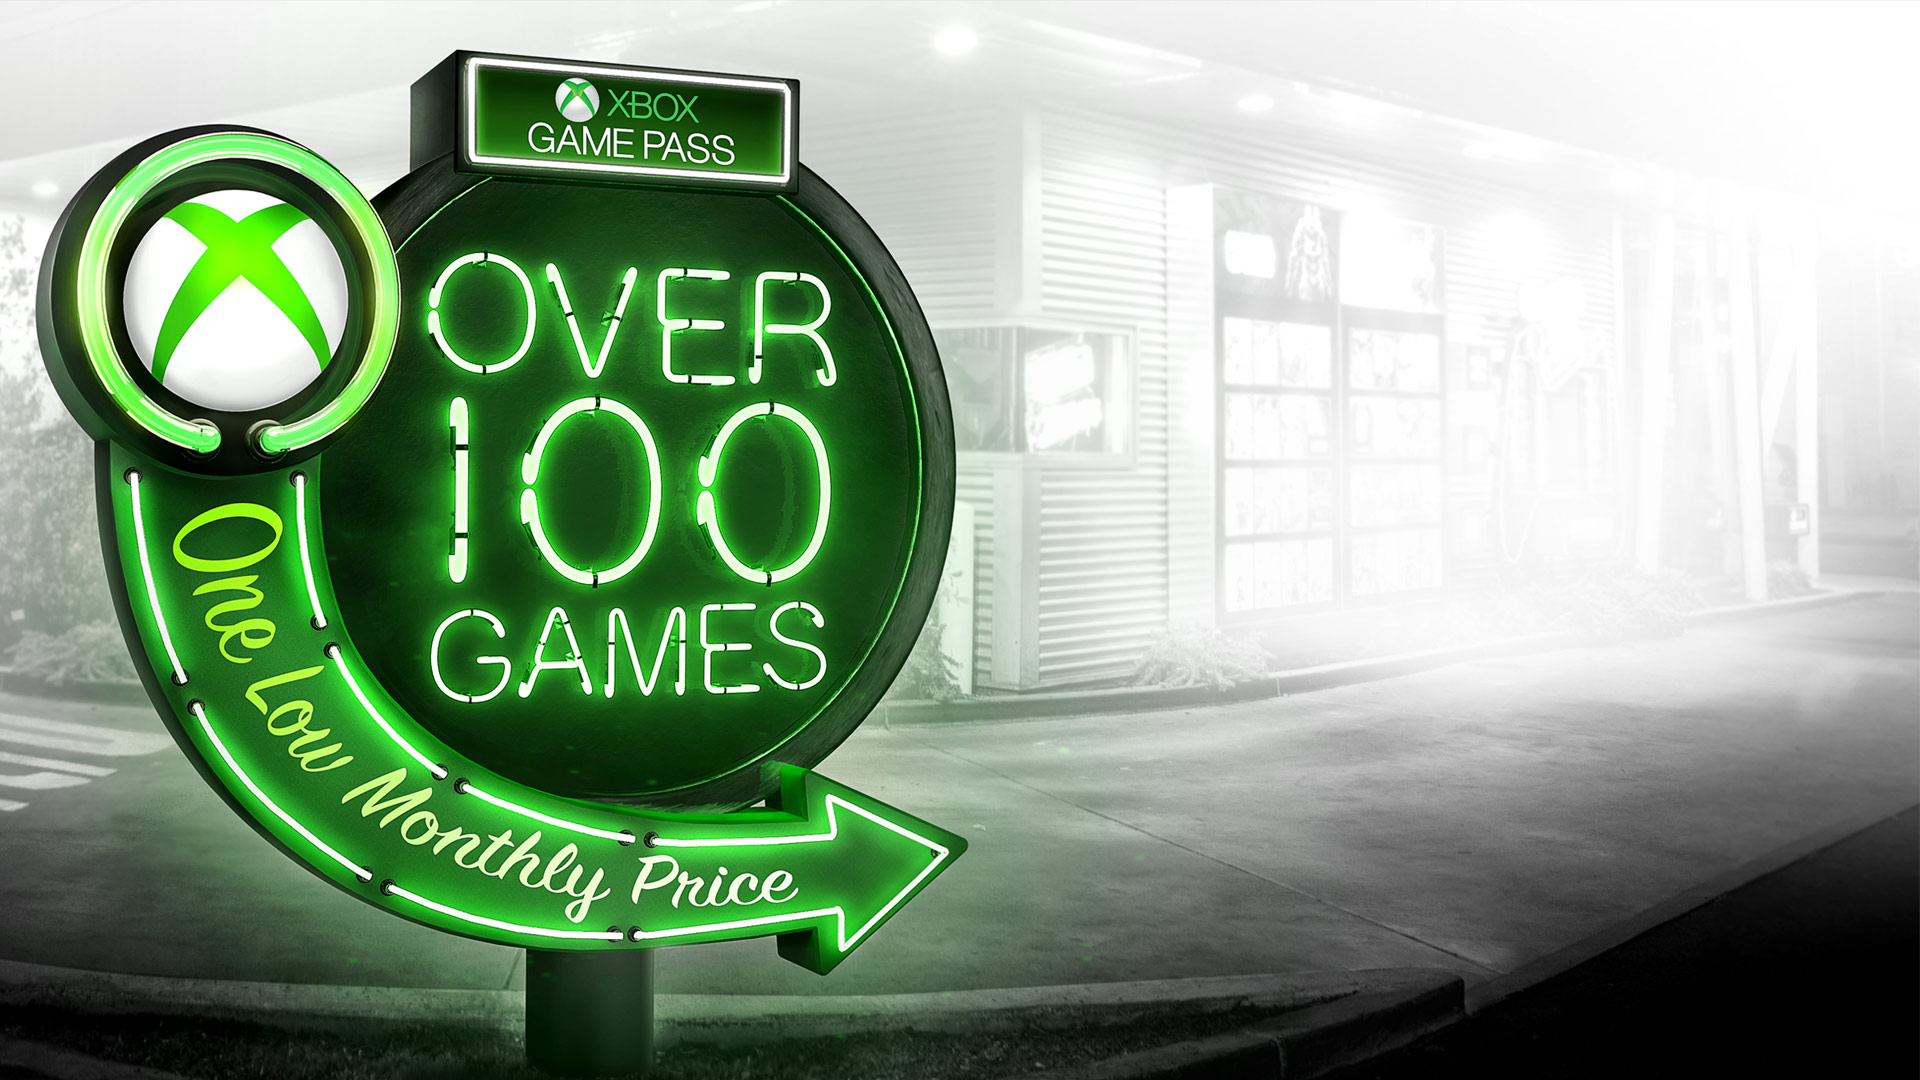 Xbox Game Pass is the best that has happened to the video game market for years